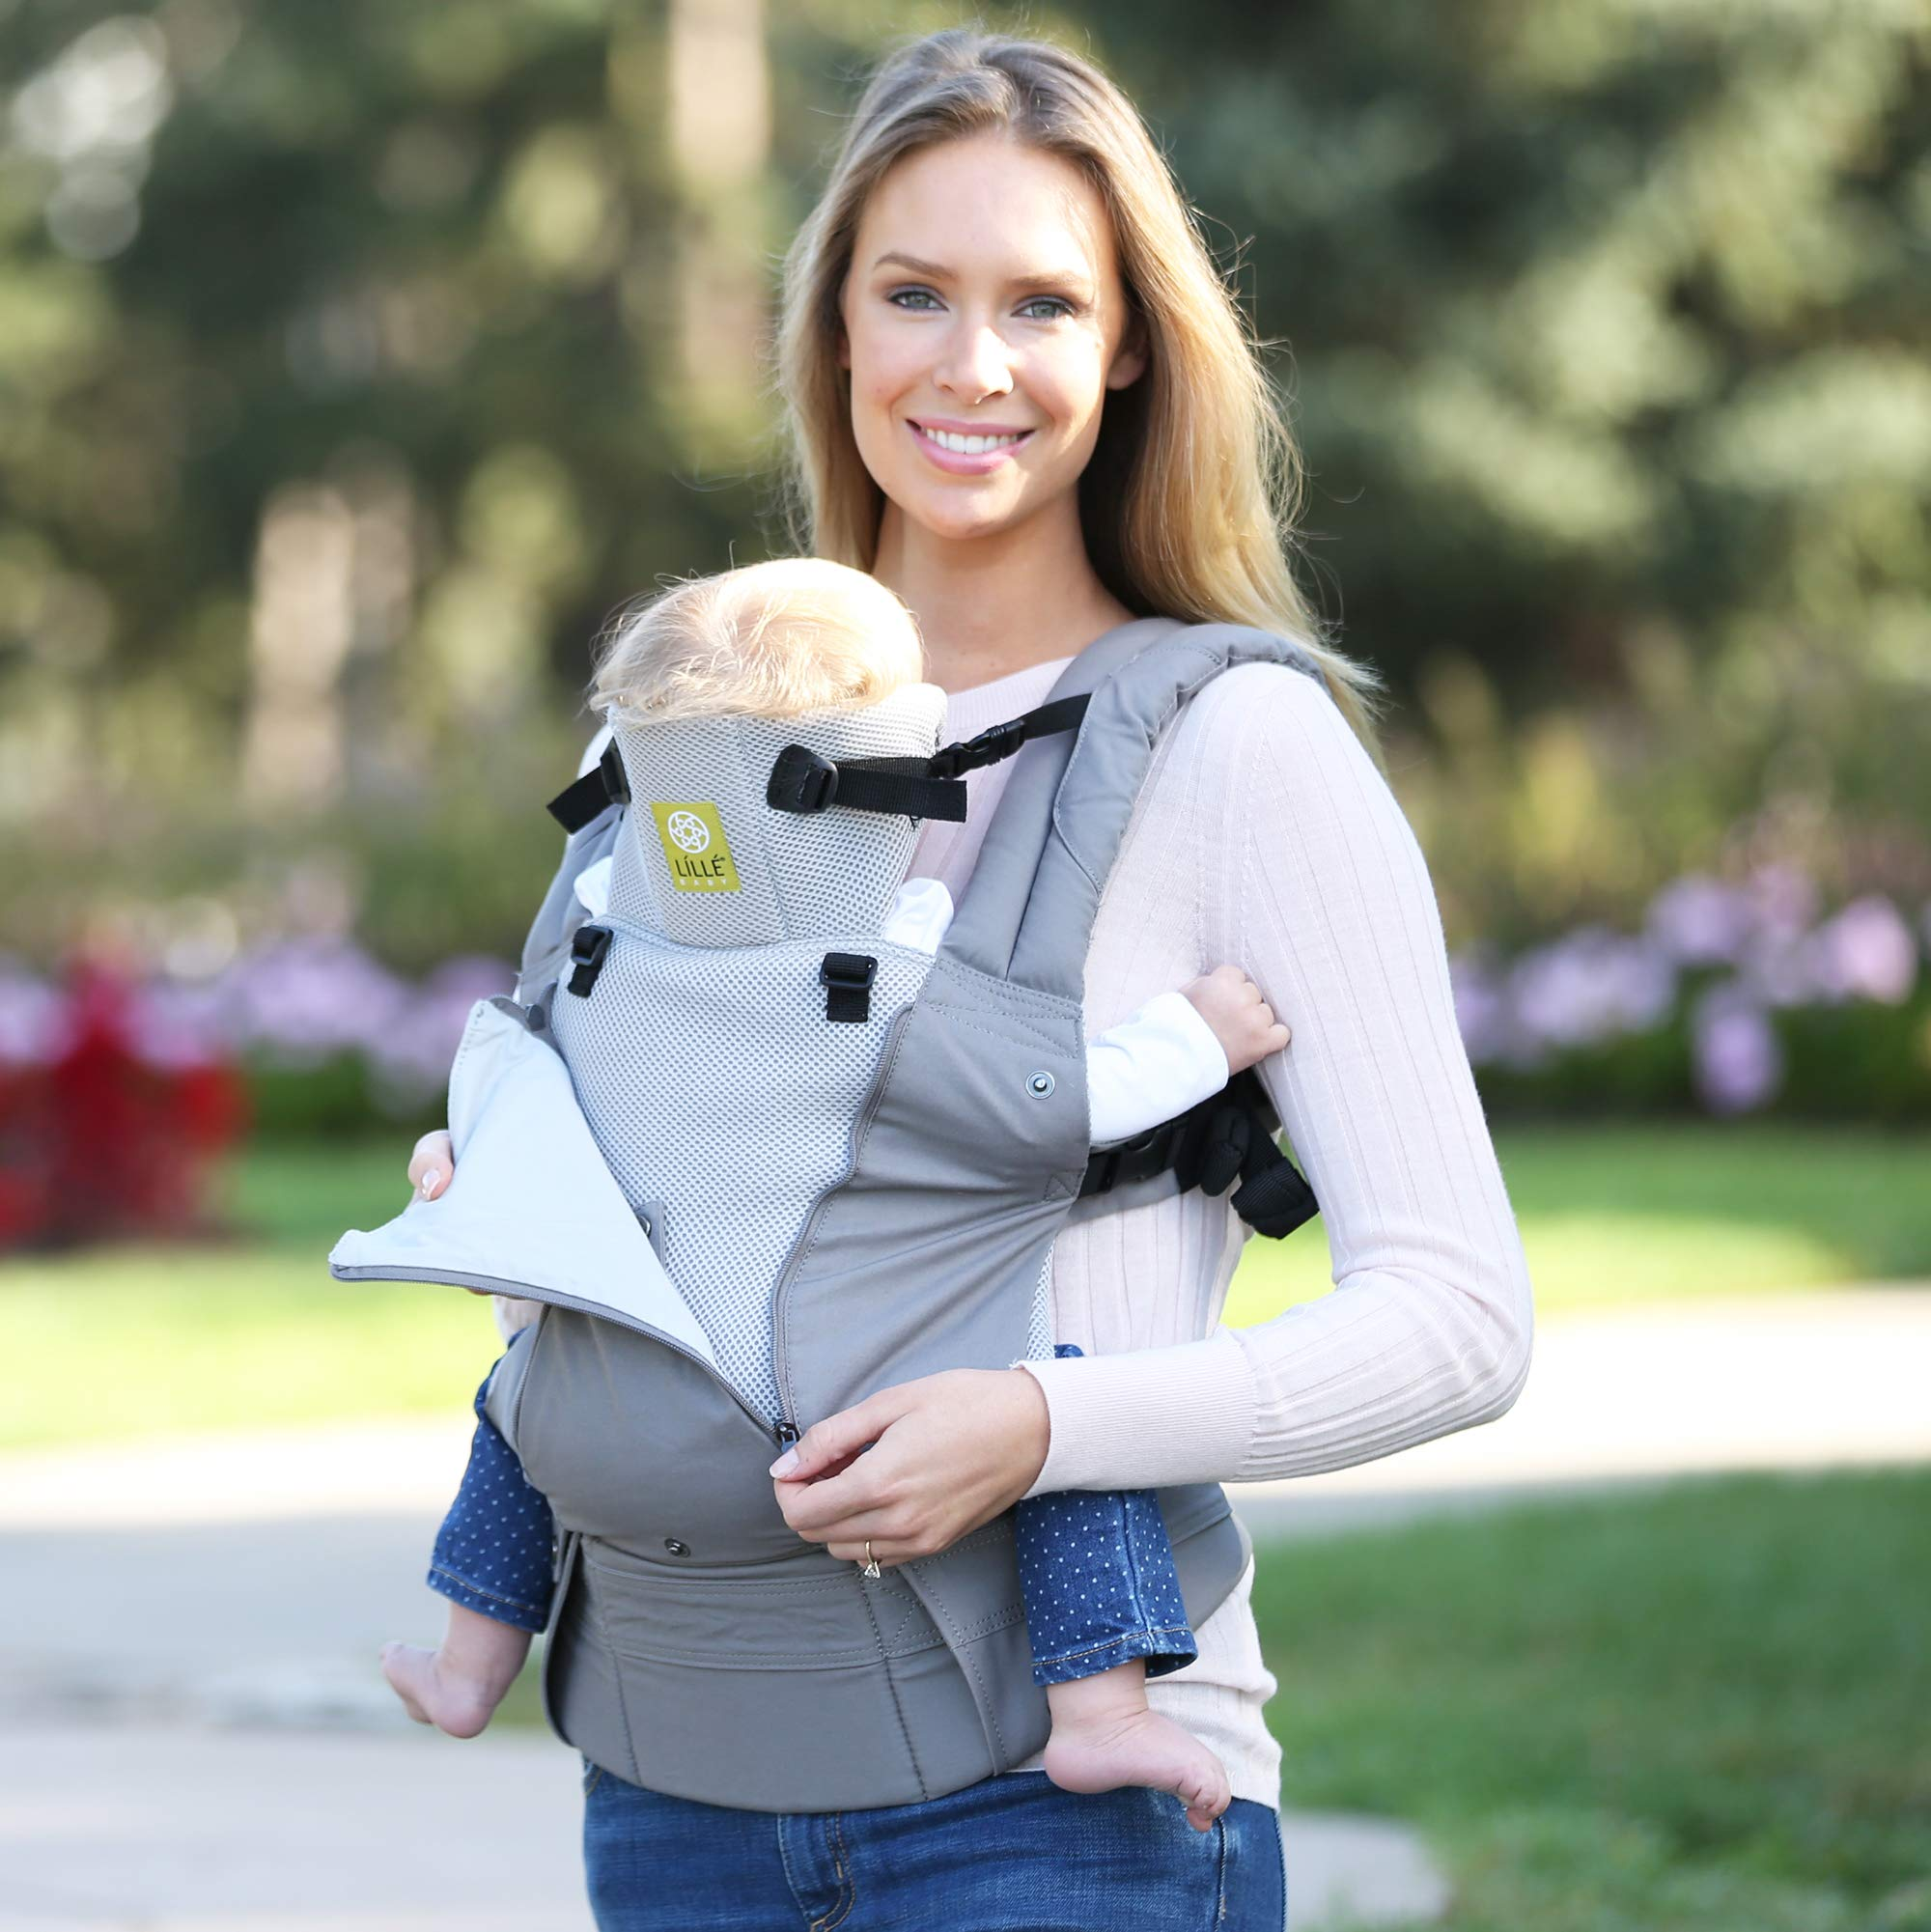 LILLEbaby SIX-Position, 360° Ergonomic Baby & Child Carrier by LILLEbaby – The COMPLETE All Seasons (Stone) by LILLEbaby (Image #6)